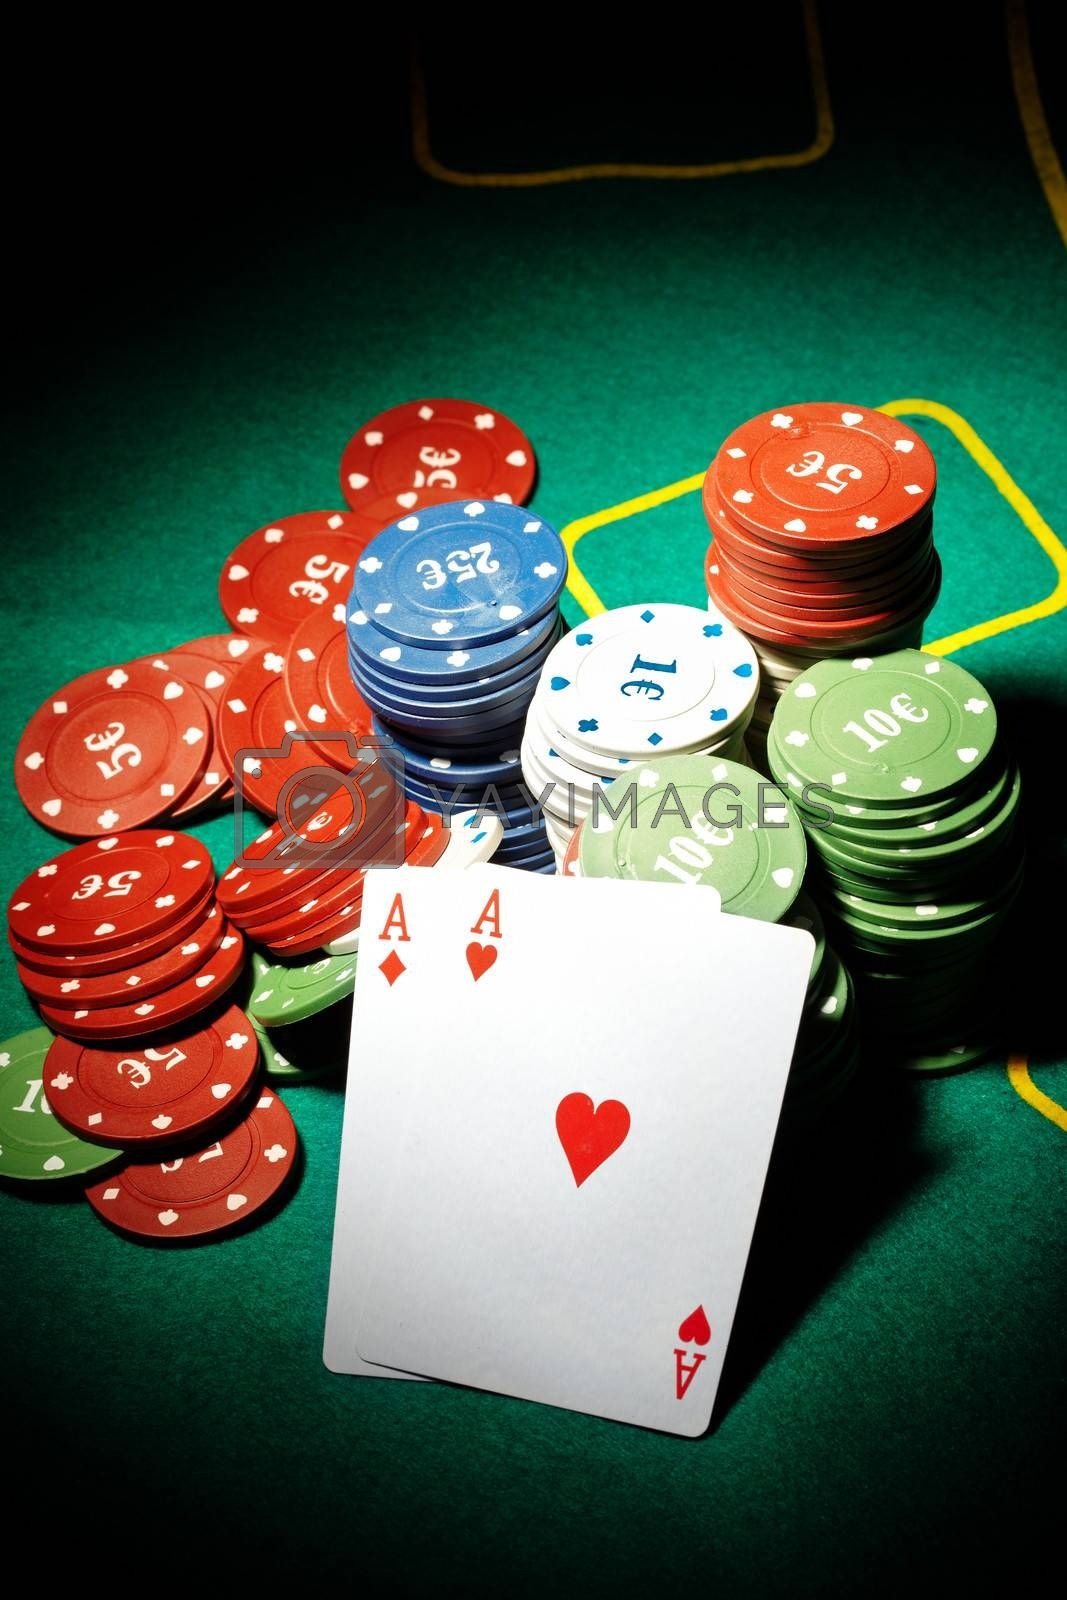 Pair of aces and poker chips on a green table in casino